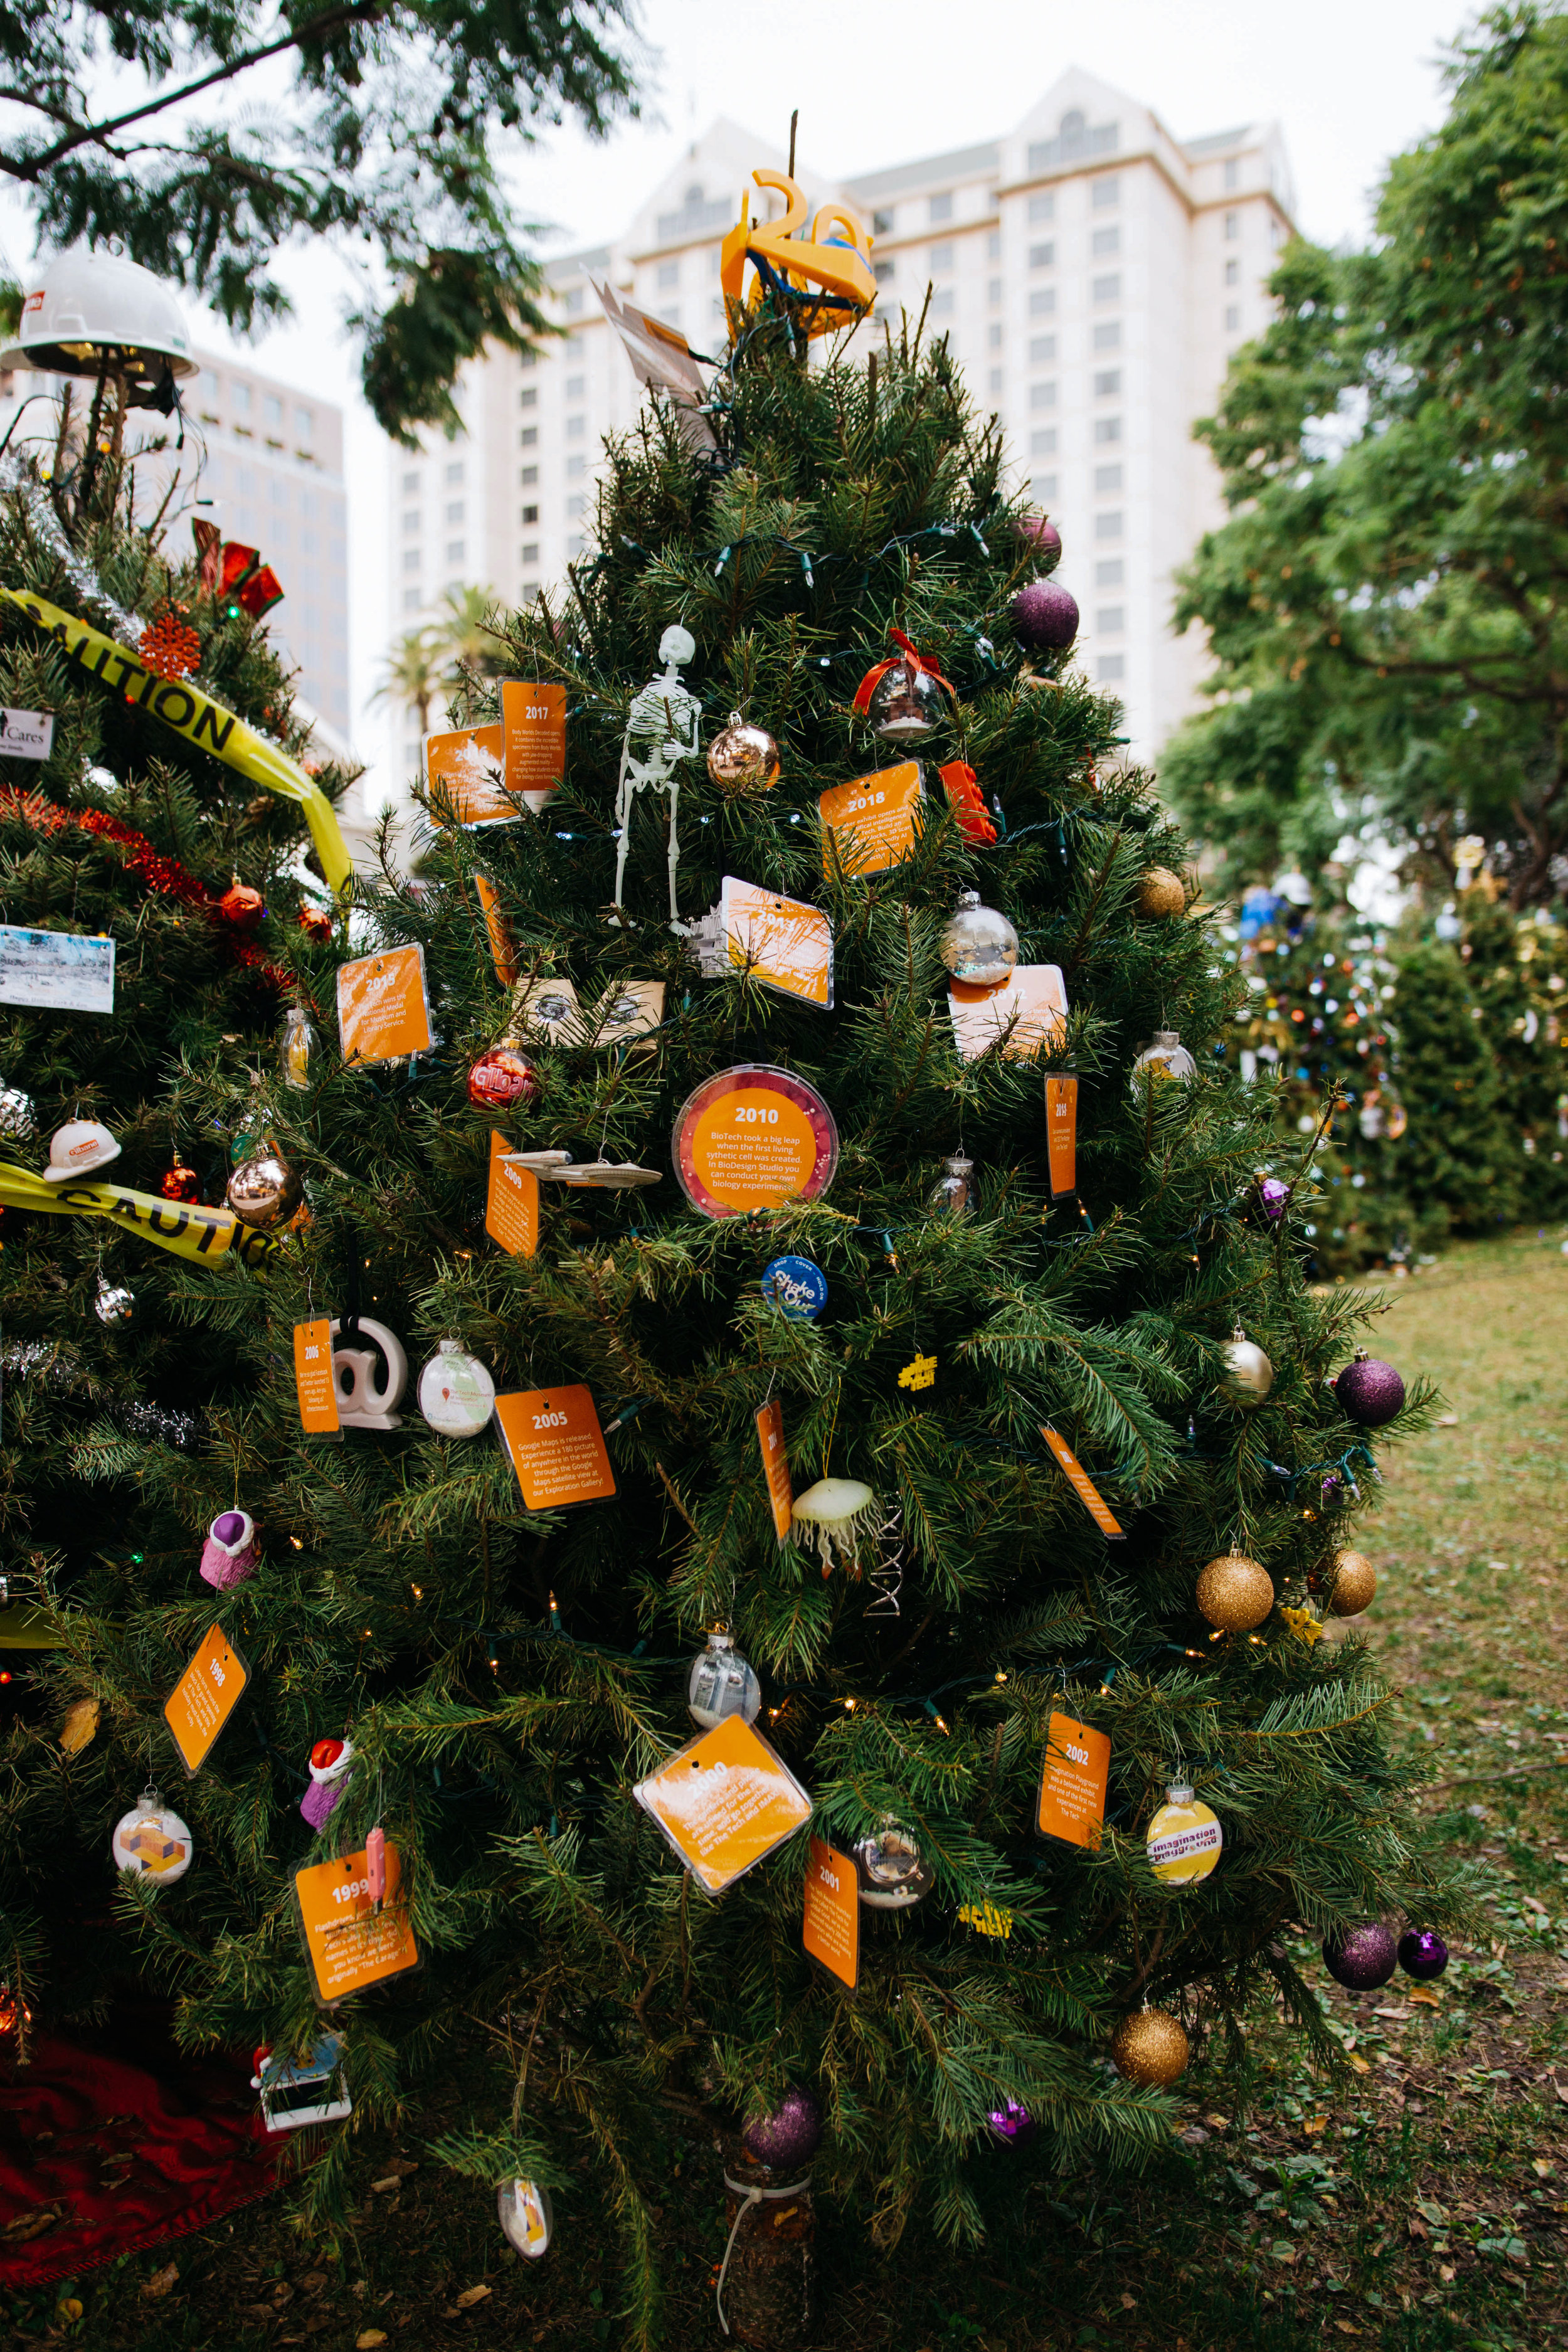 The Tech Tree-via: a  20-year timeline . The Media + Community team decorated and displayed a tree for Christmas in the Park, an annual holiday tradition in Downtown San Jose.